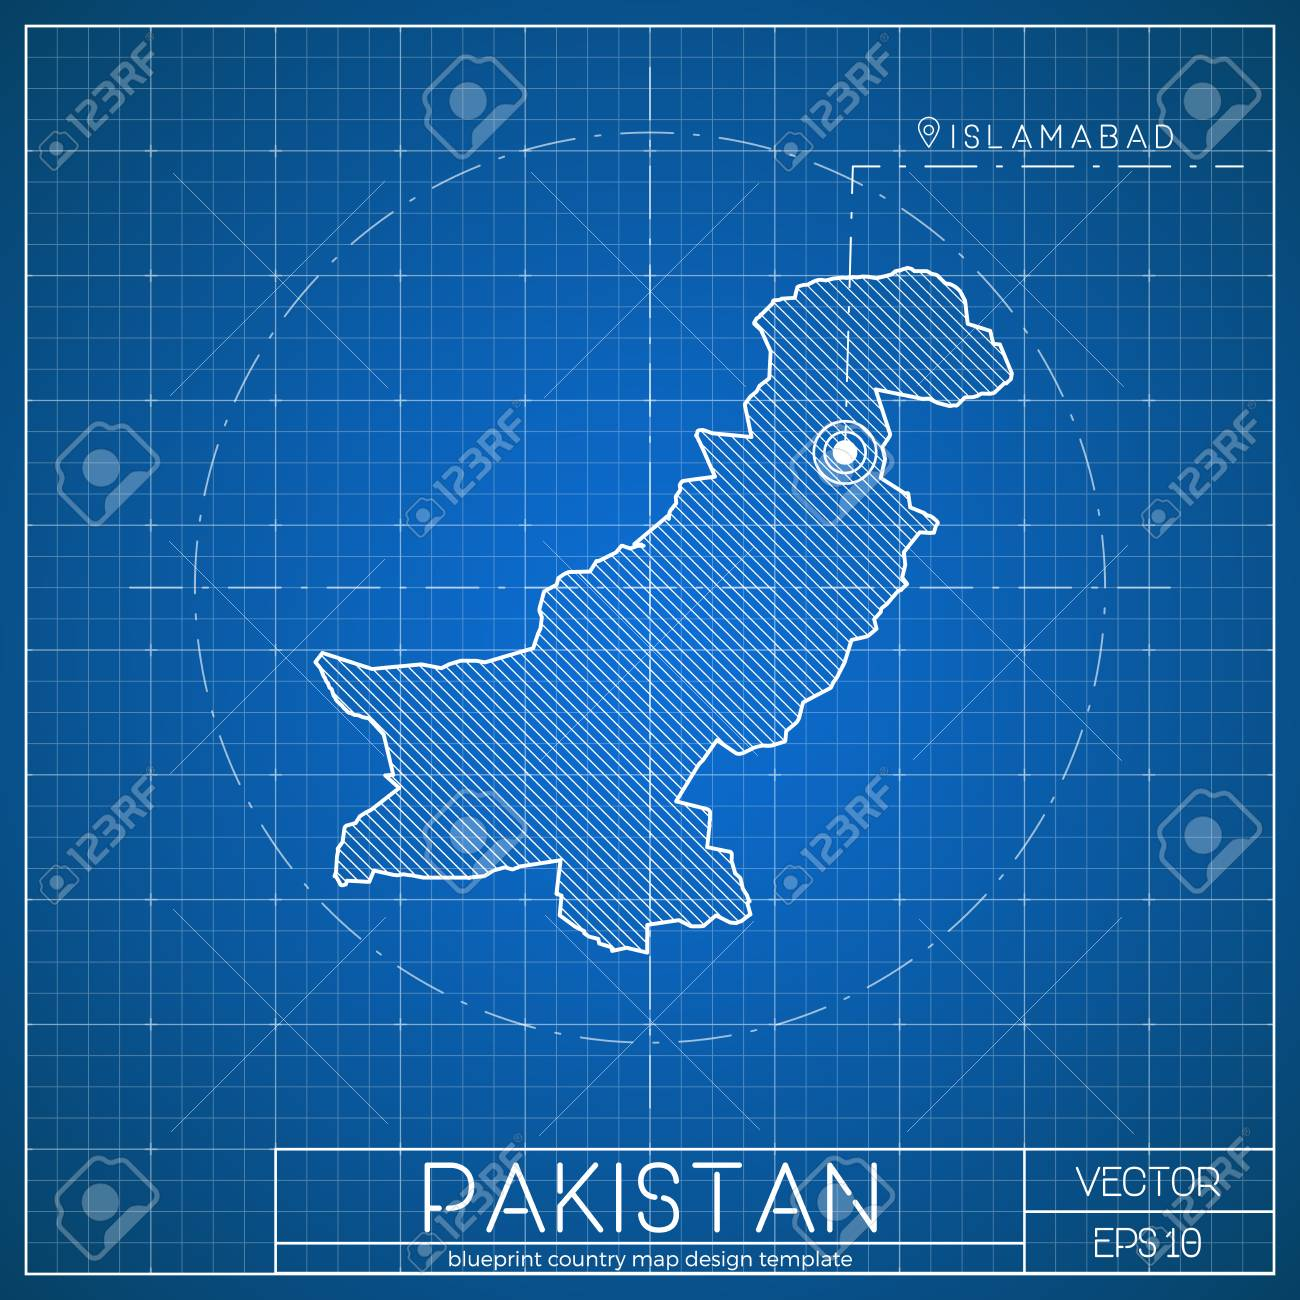 Pakistan blueprint map template with capital city islamabad pakistan blueprint map template with capital city islamabad marked on blueprint pakistani map vector malvernweather Images